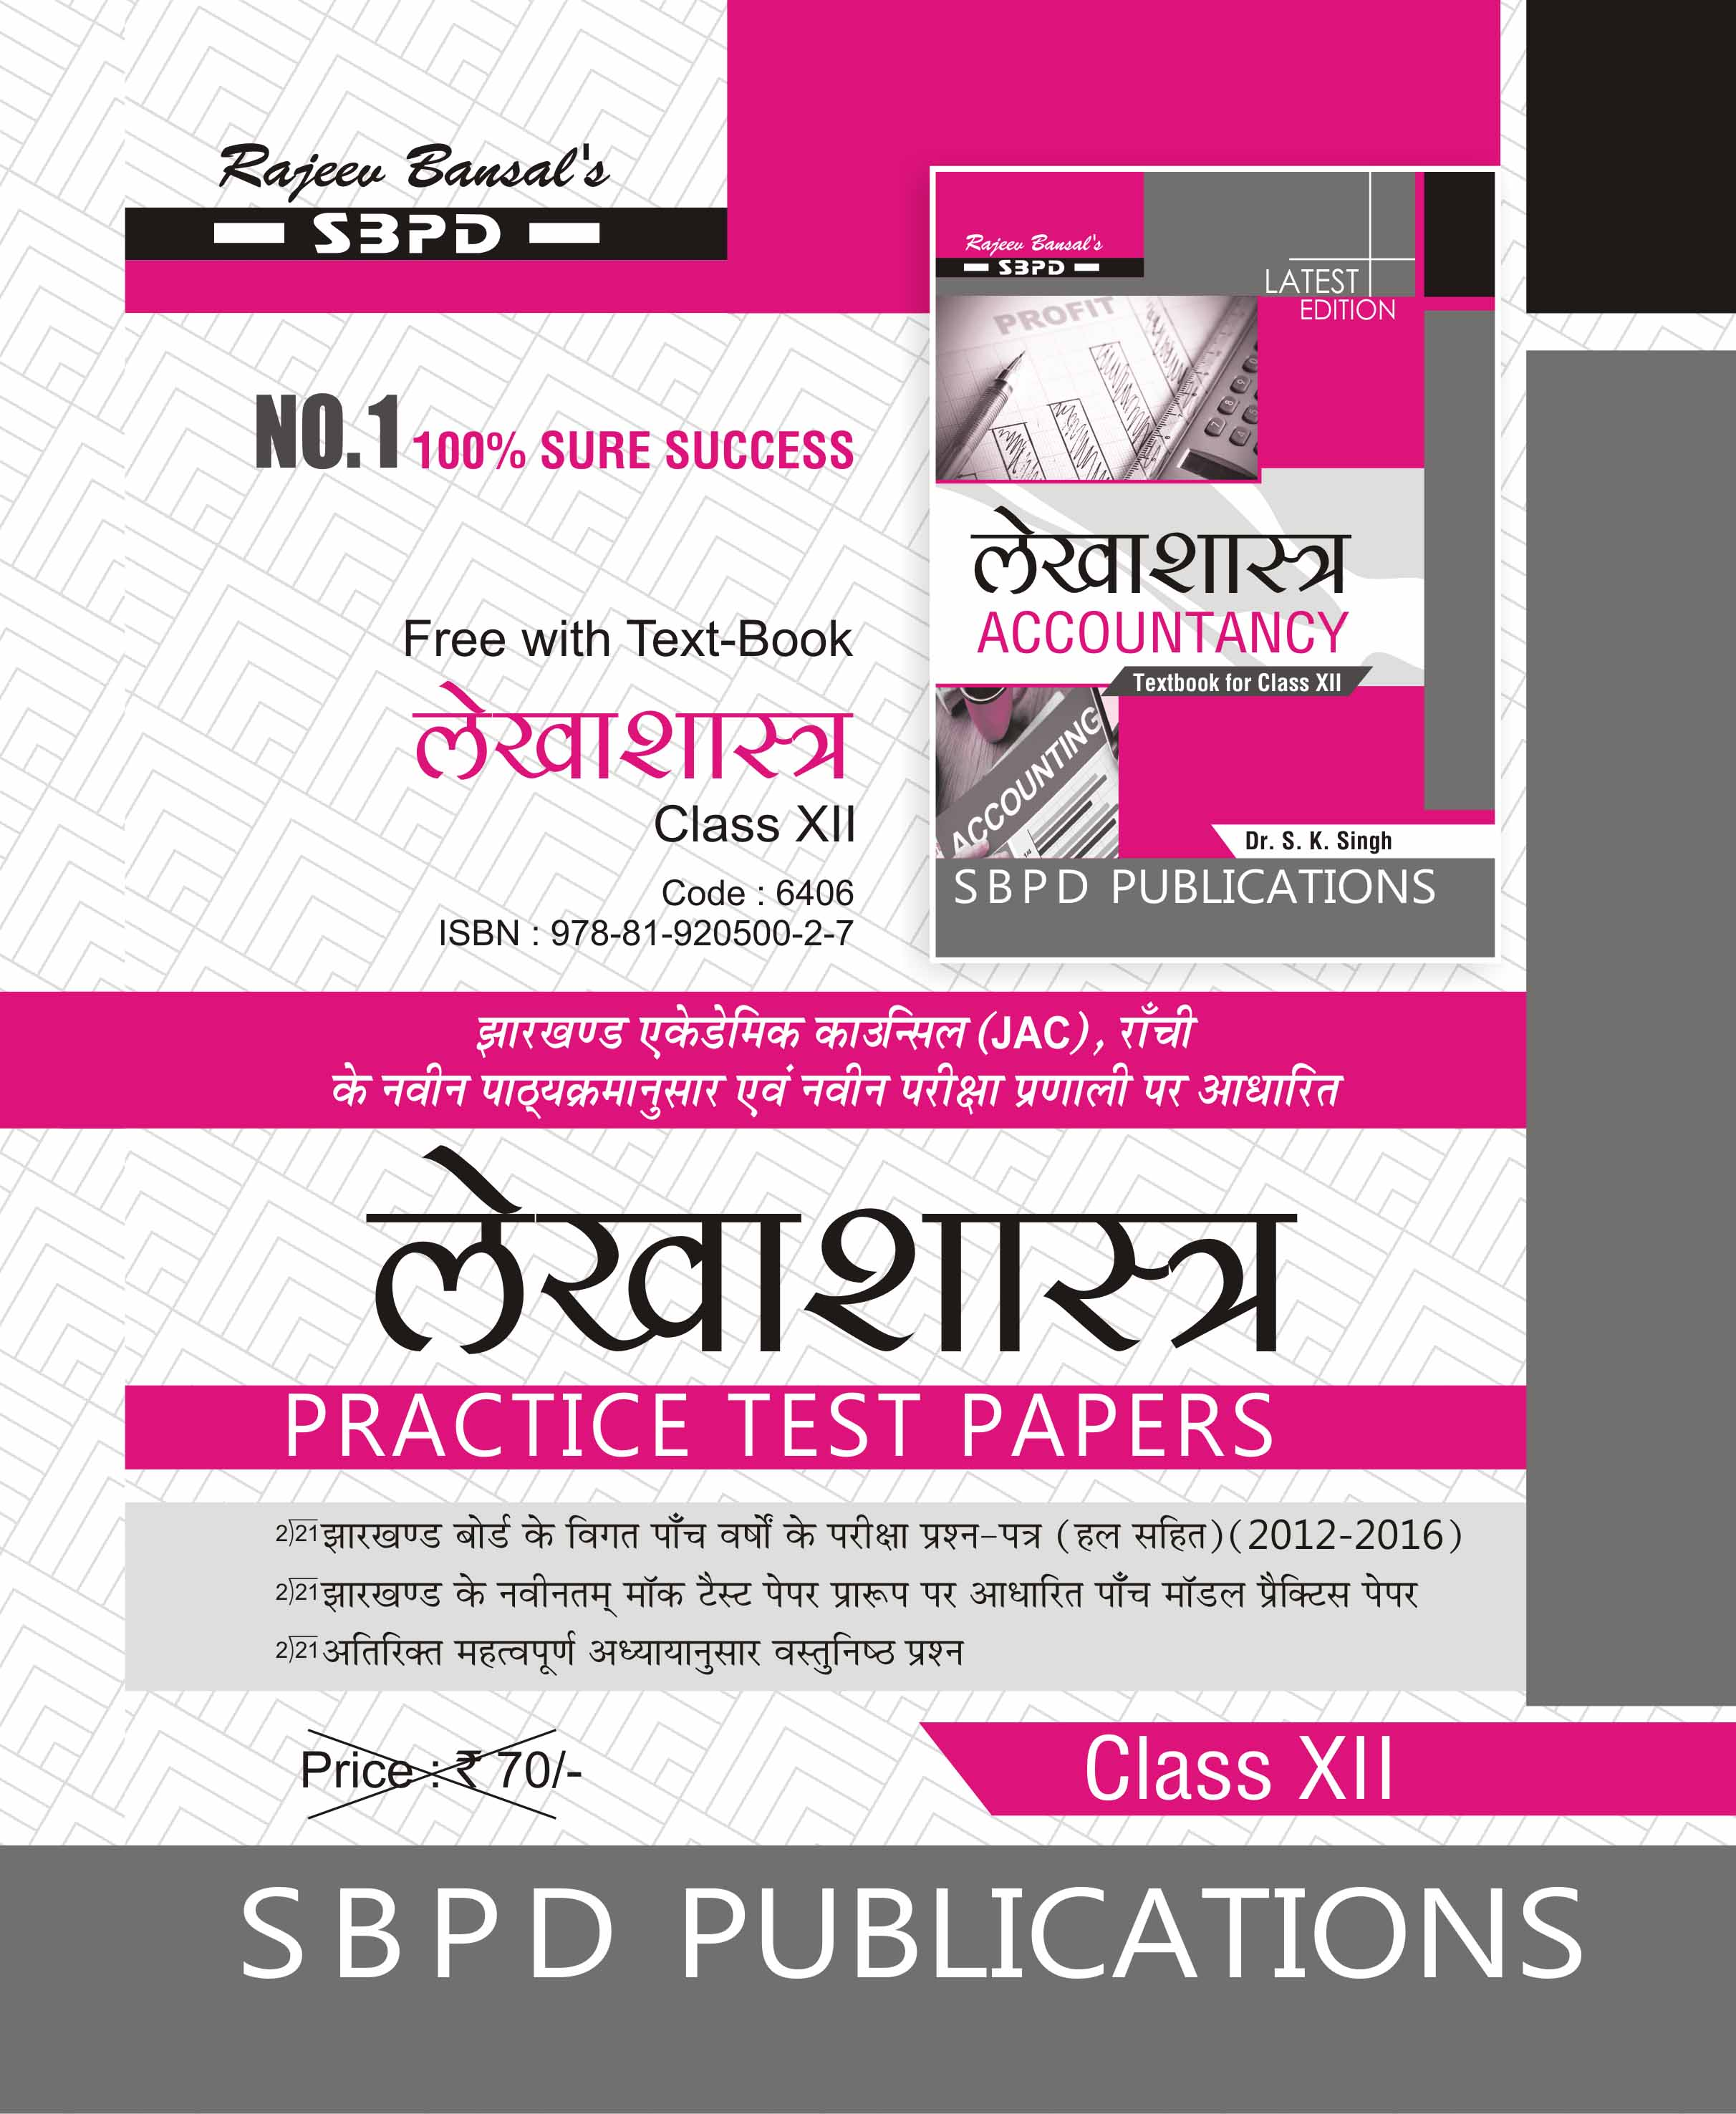 Accountancy Model Practice Test Papers For Class XII